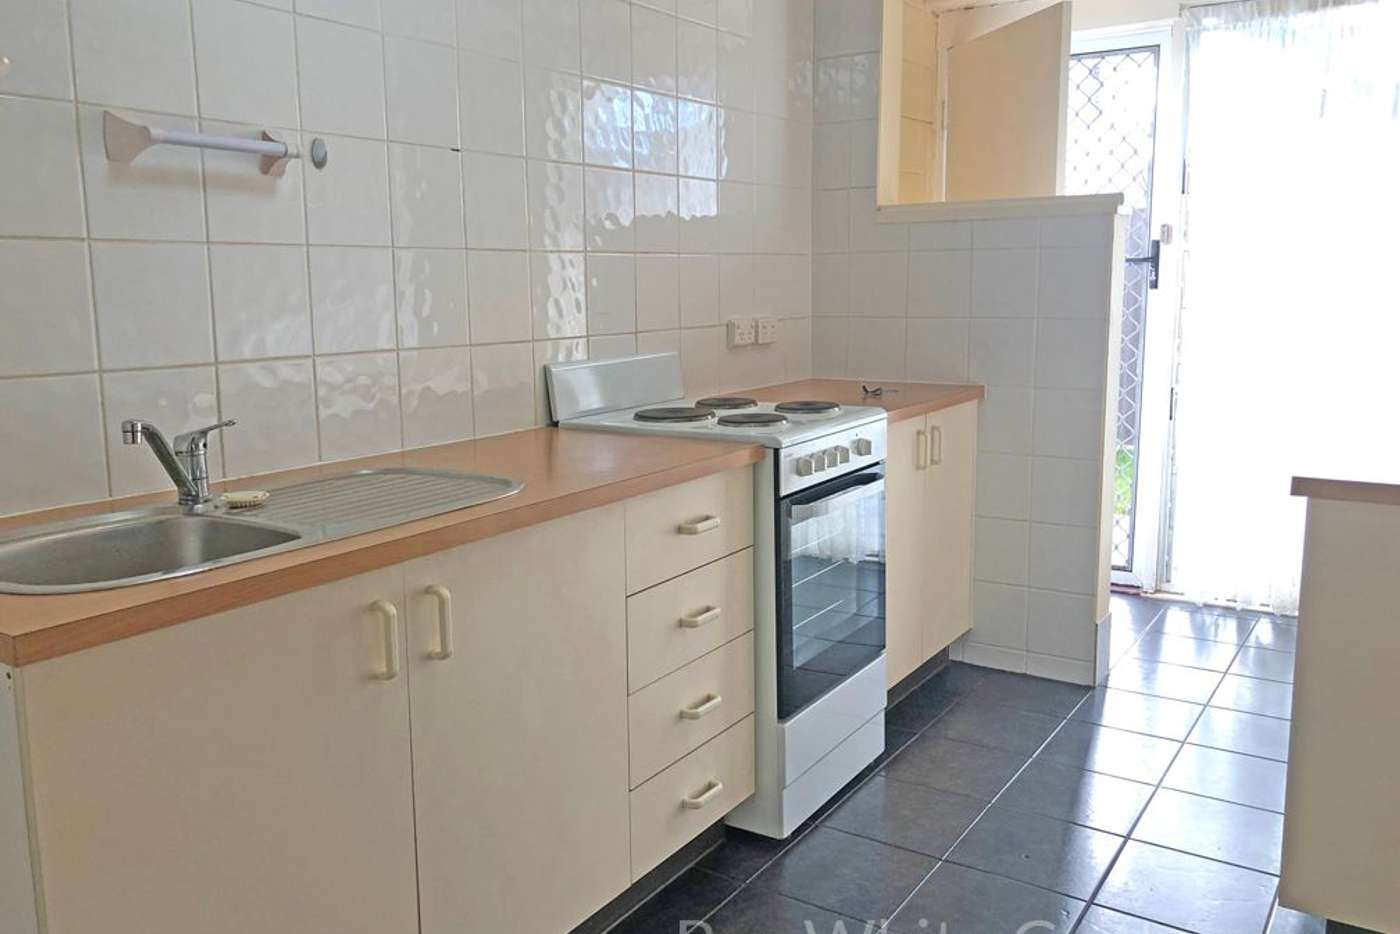 Main view of Homely unit listing, 2/31 Clifton Street, Booval QLD 4304